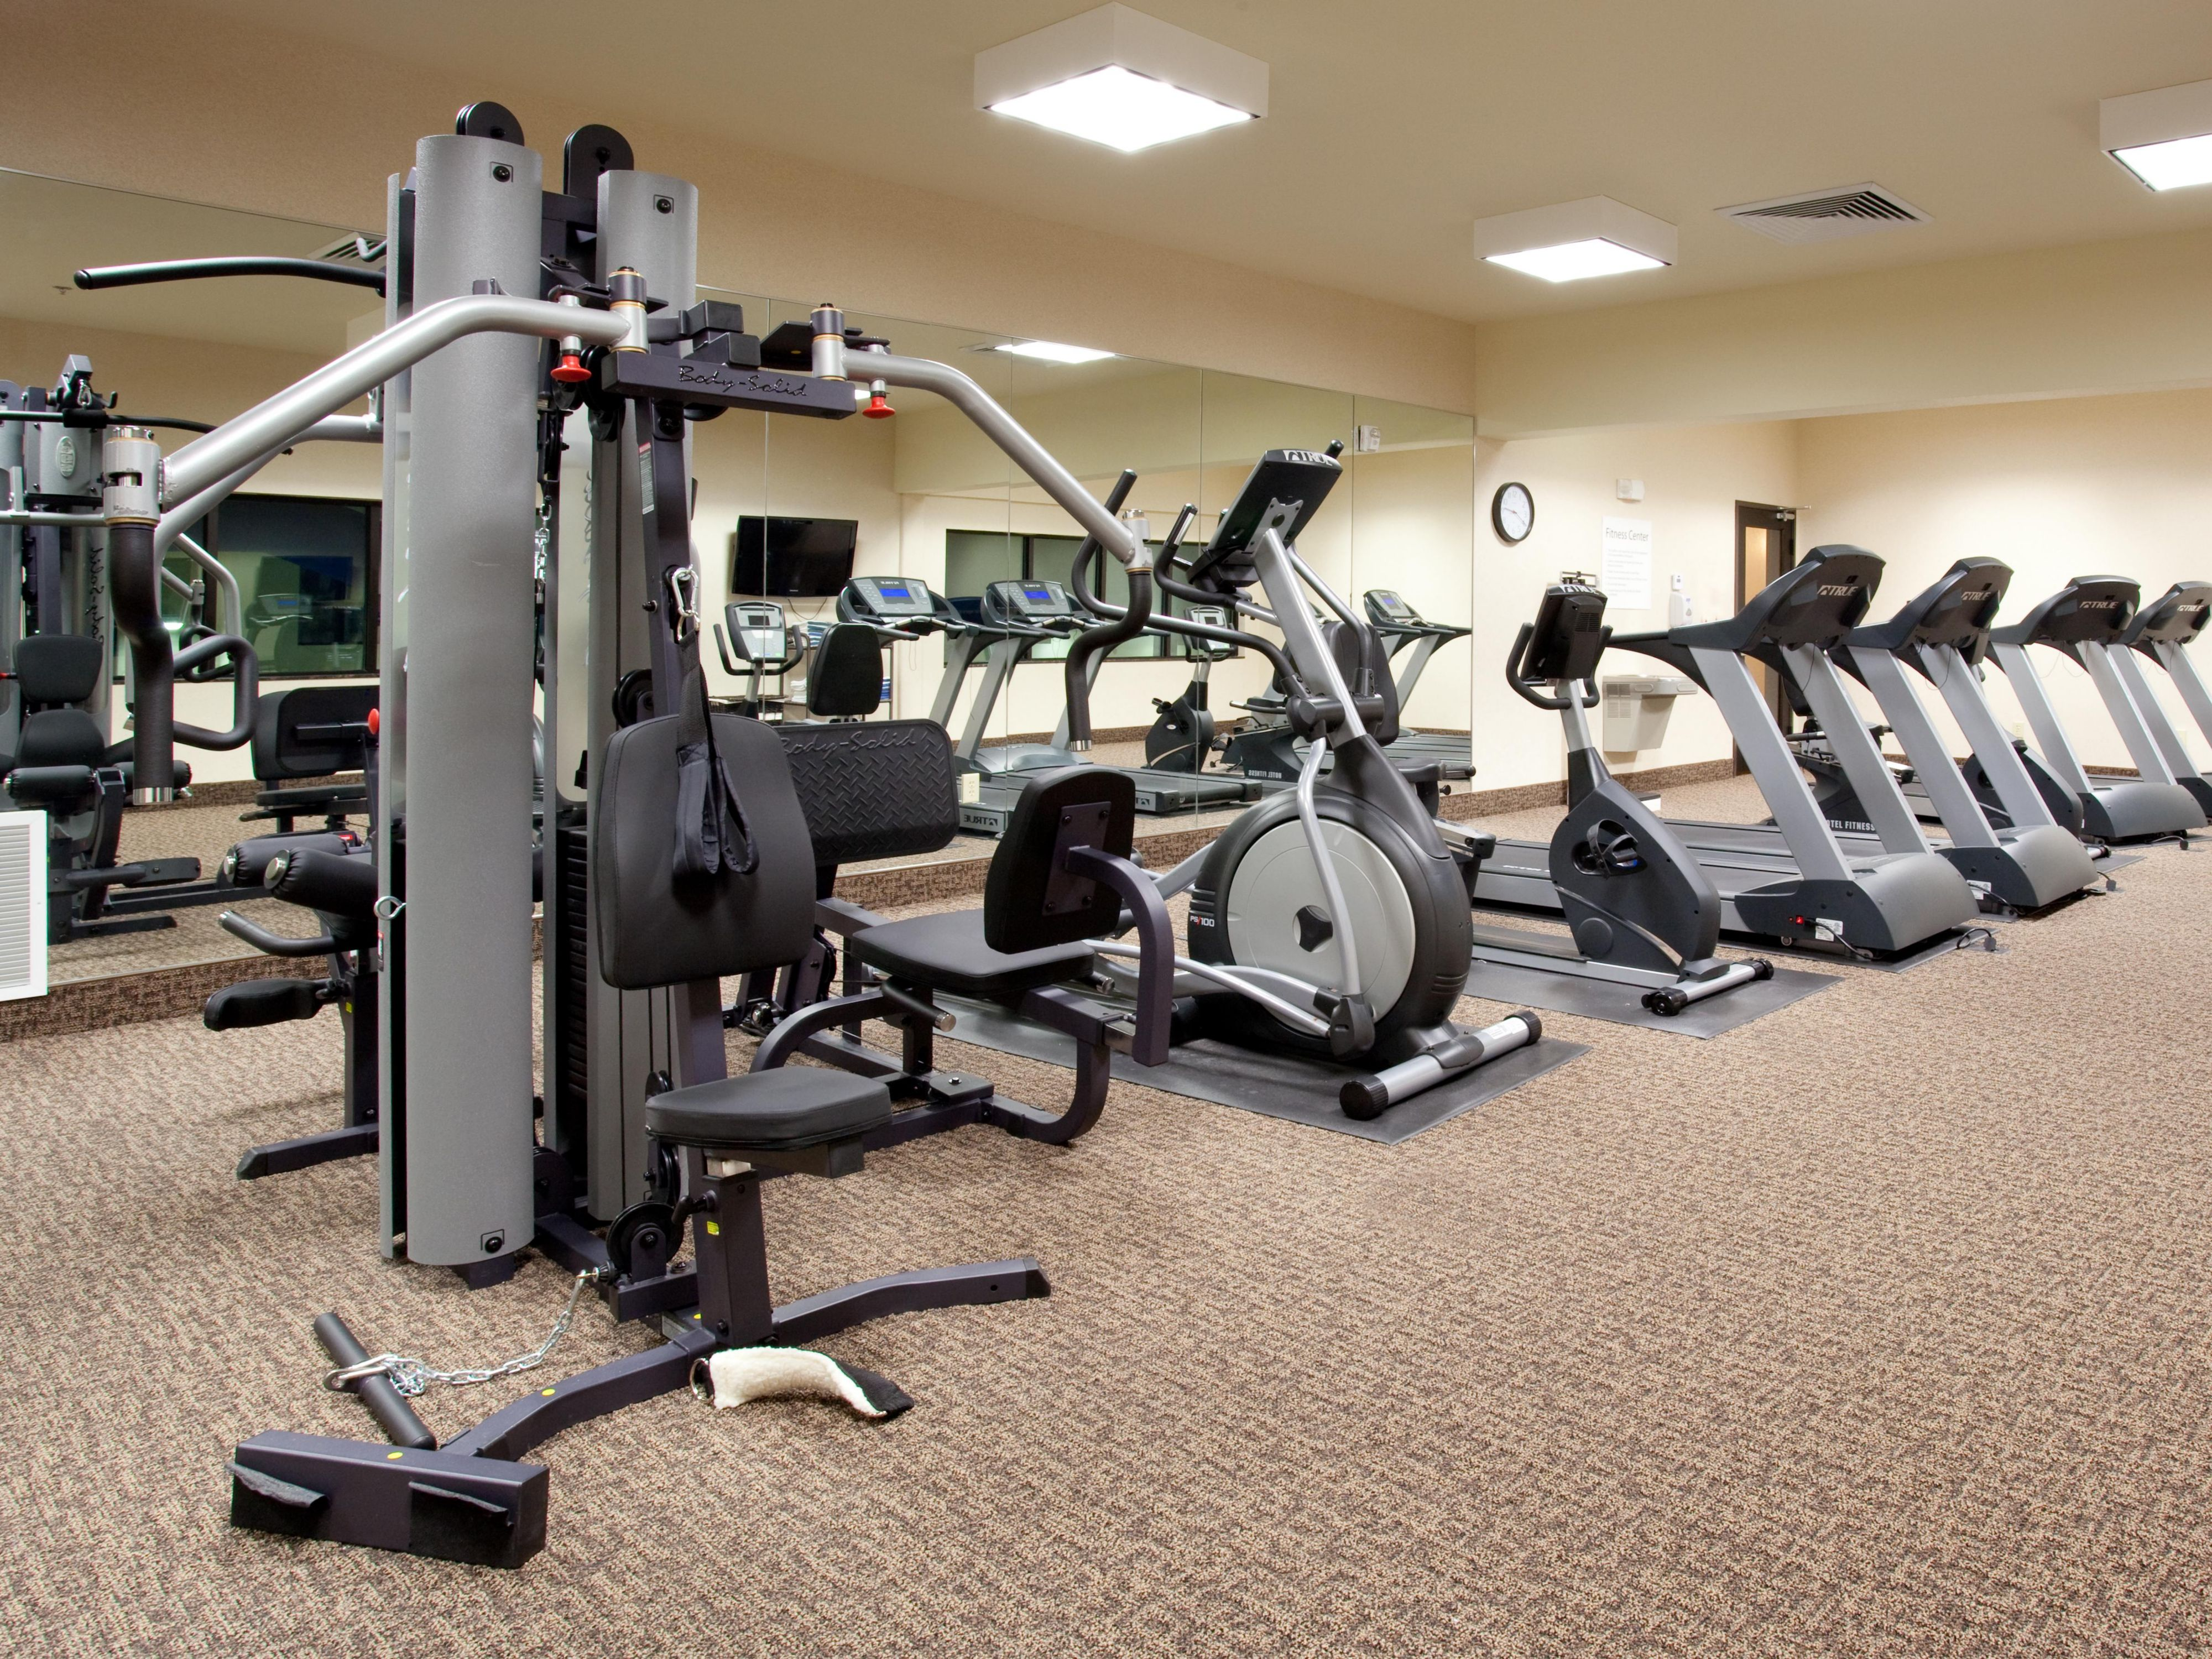 Get a great workout in our Health & Fitness Center